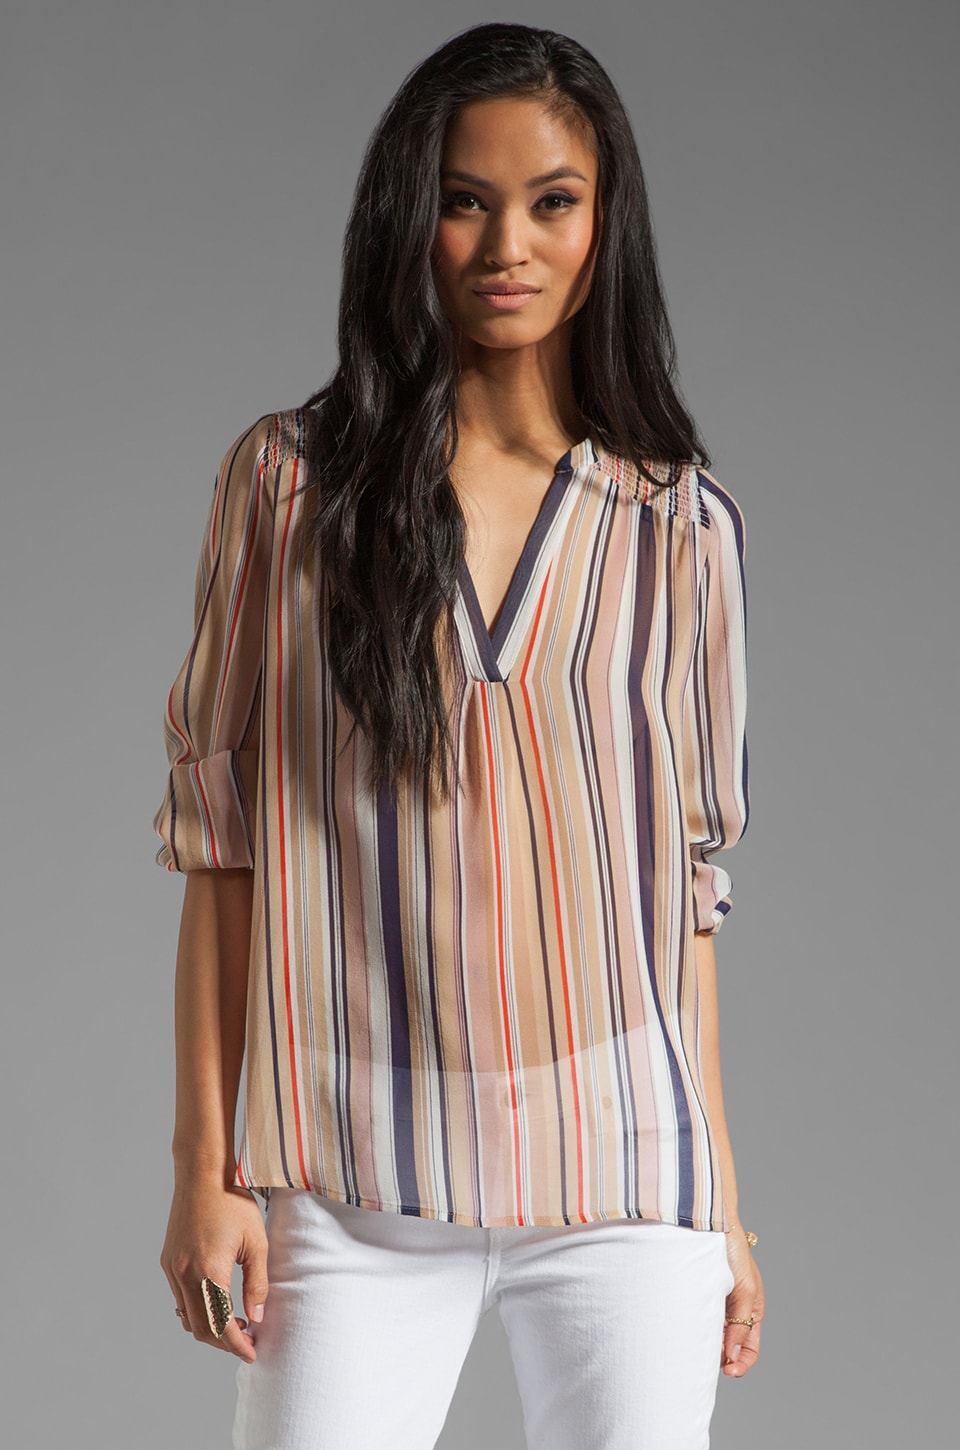 Joie Carlene Stripe Print Top in Dusty/Pink Sand